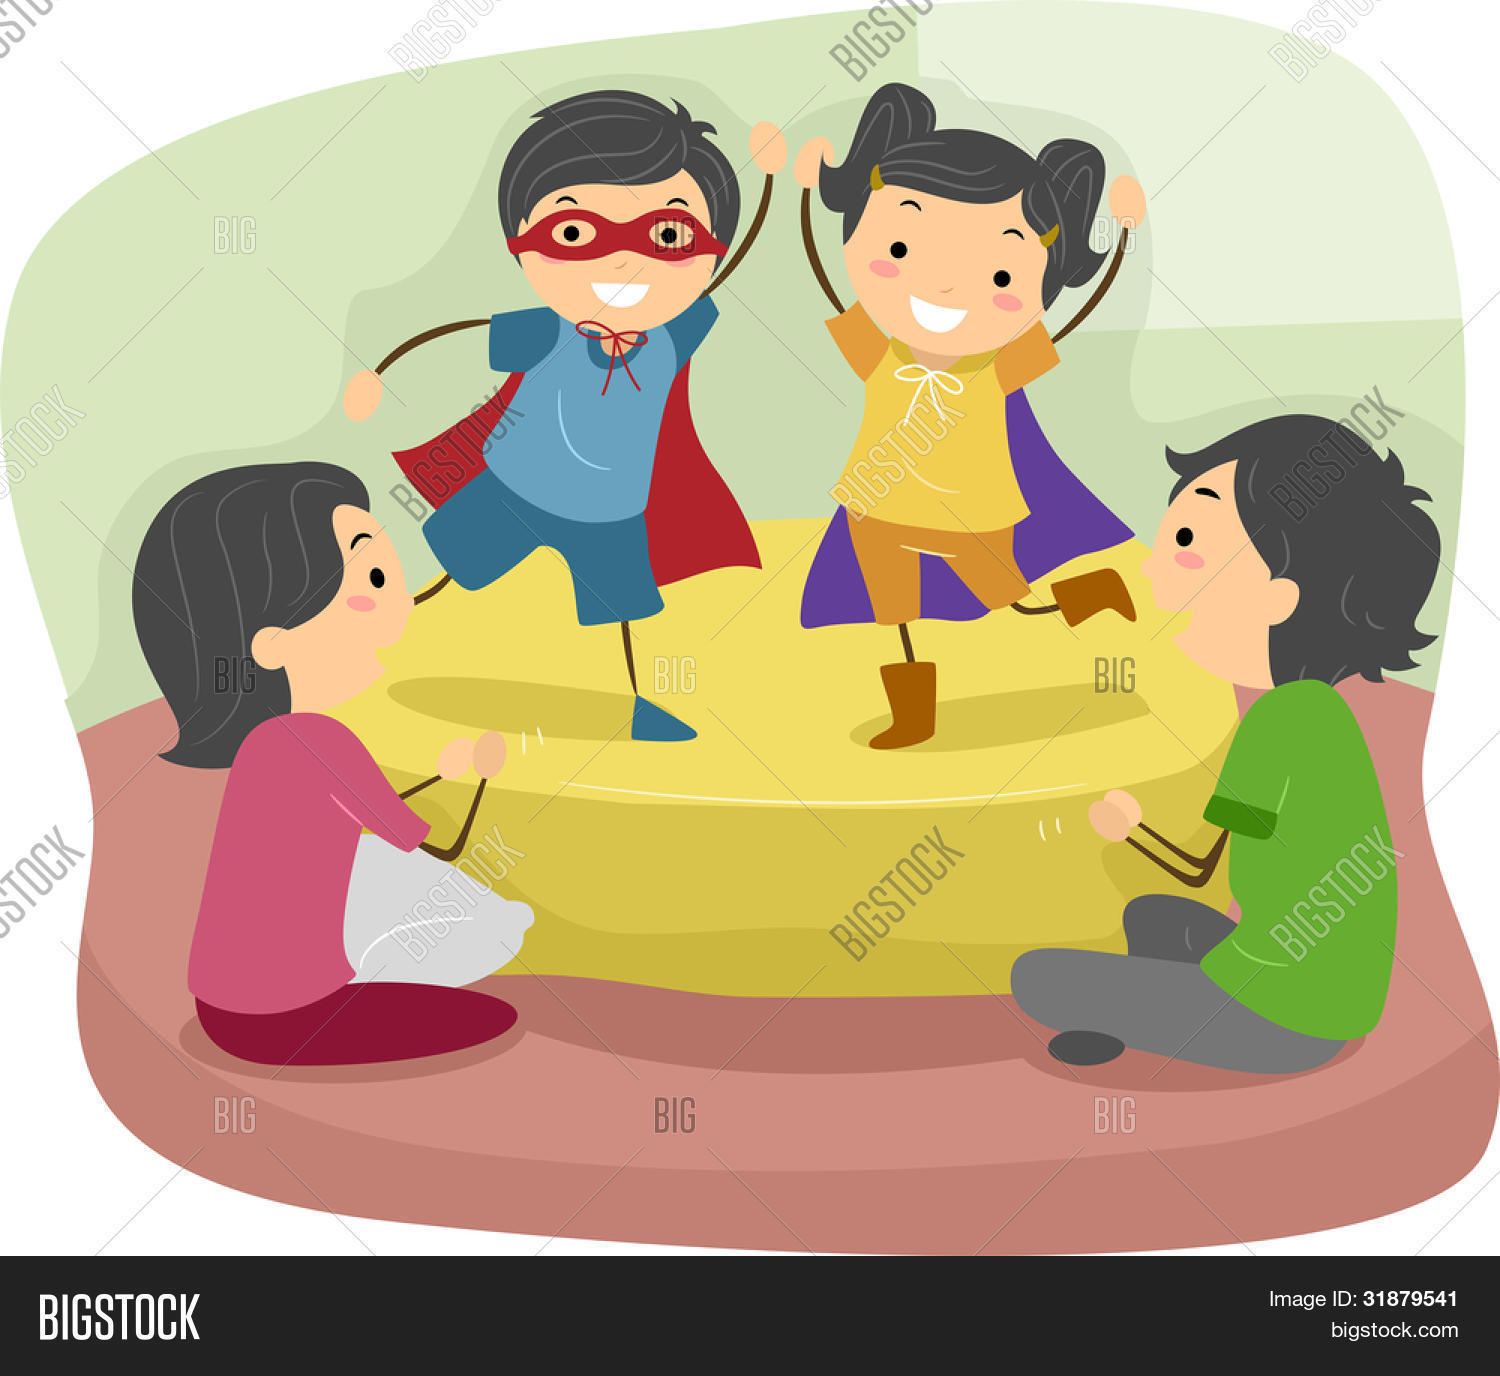 Illustration of Kids Doing a Role Play in Front of their ...